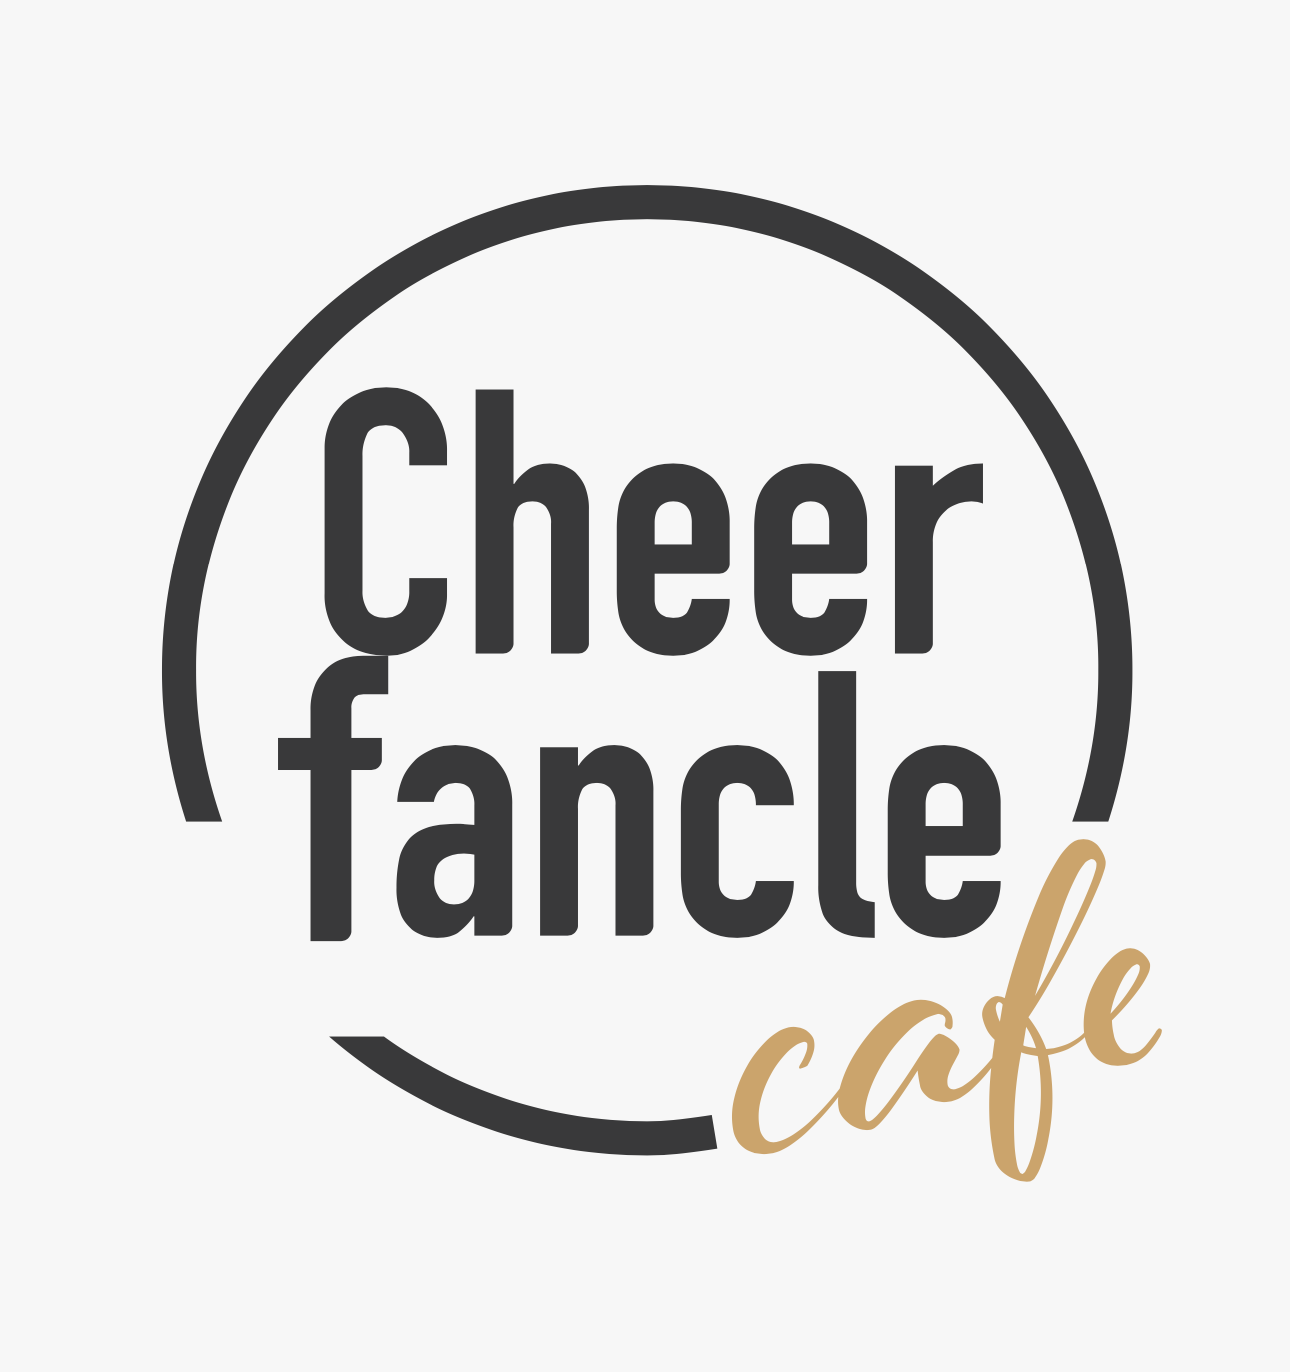 「Cheer fancle cafe」ロゴ